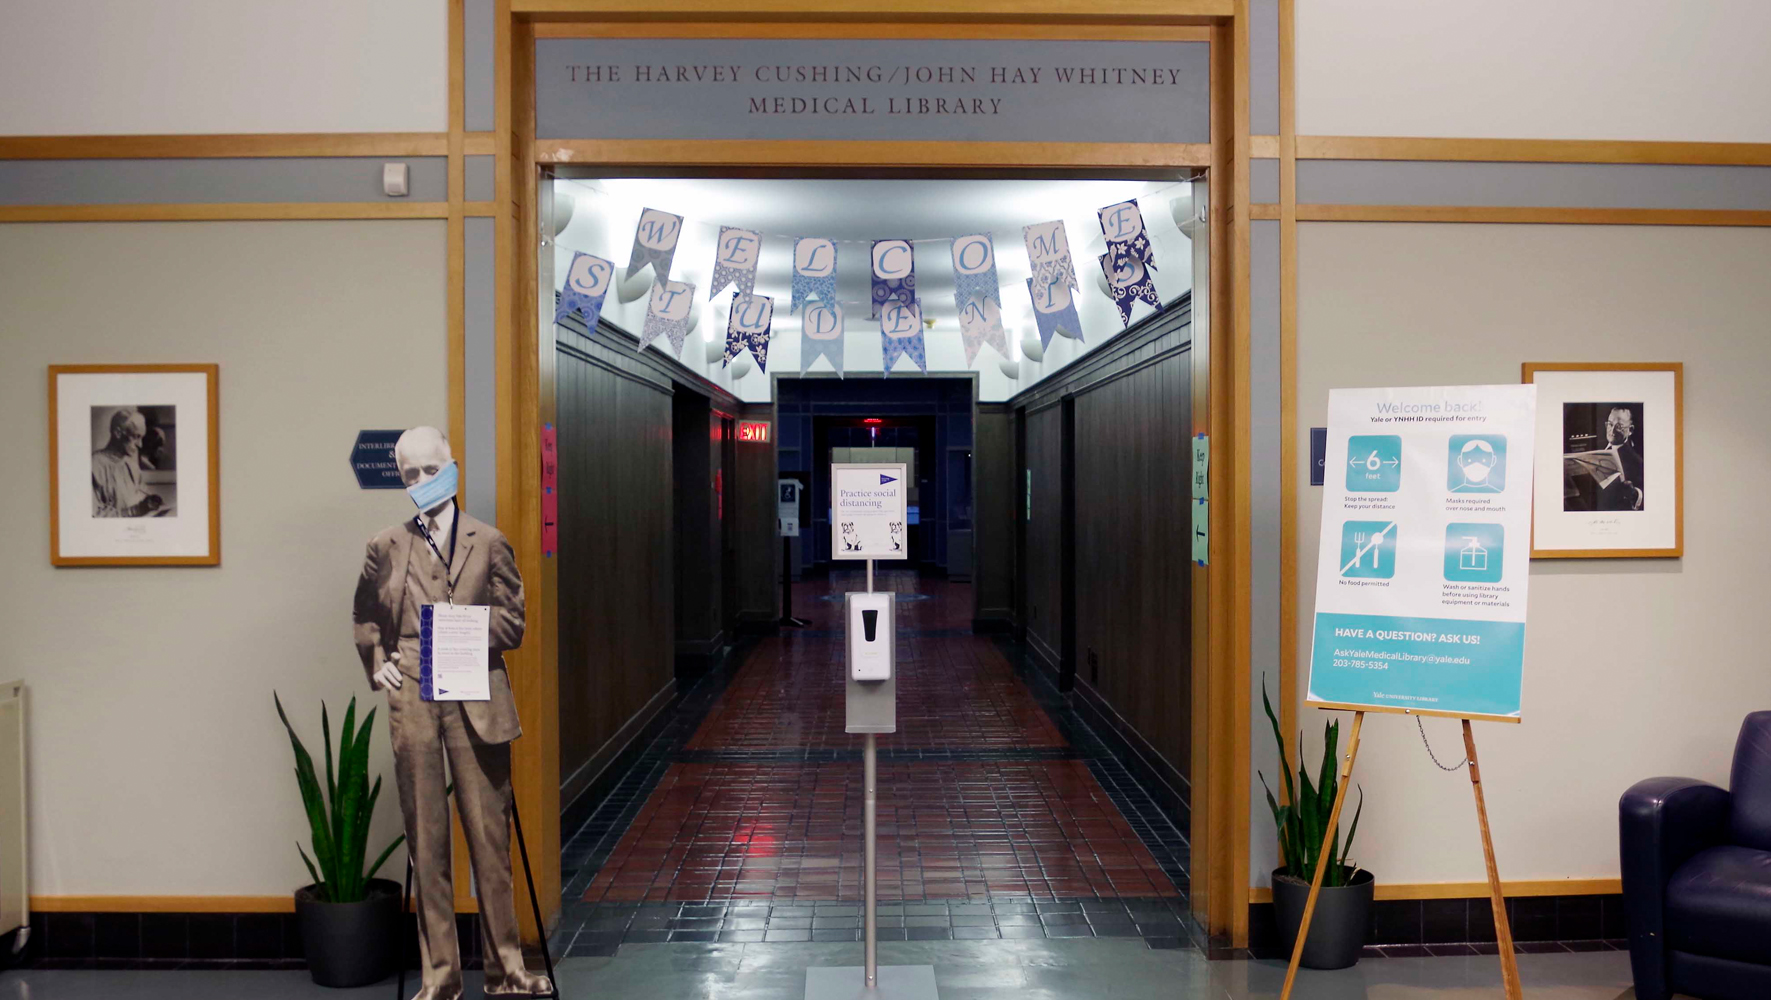 image of the medical library entrance with social distancing protocols